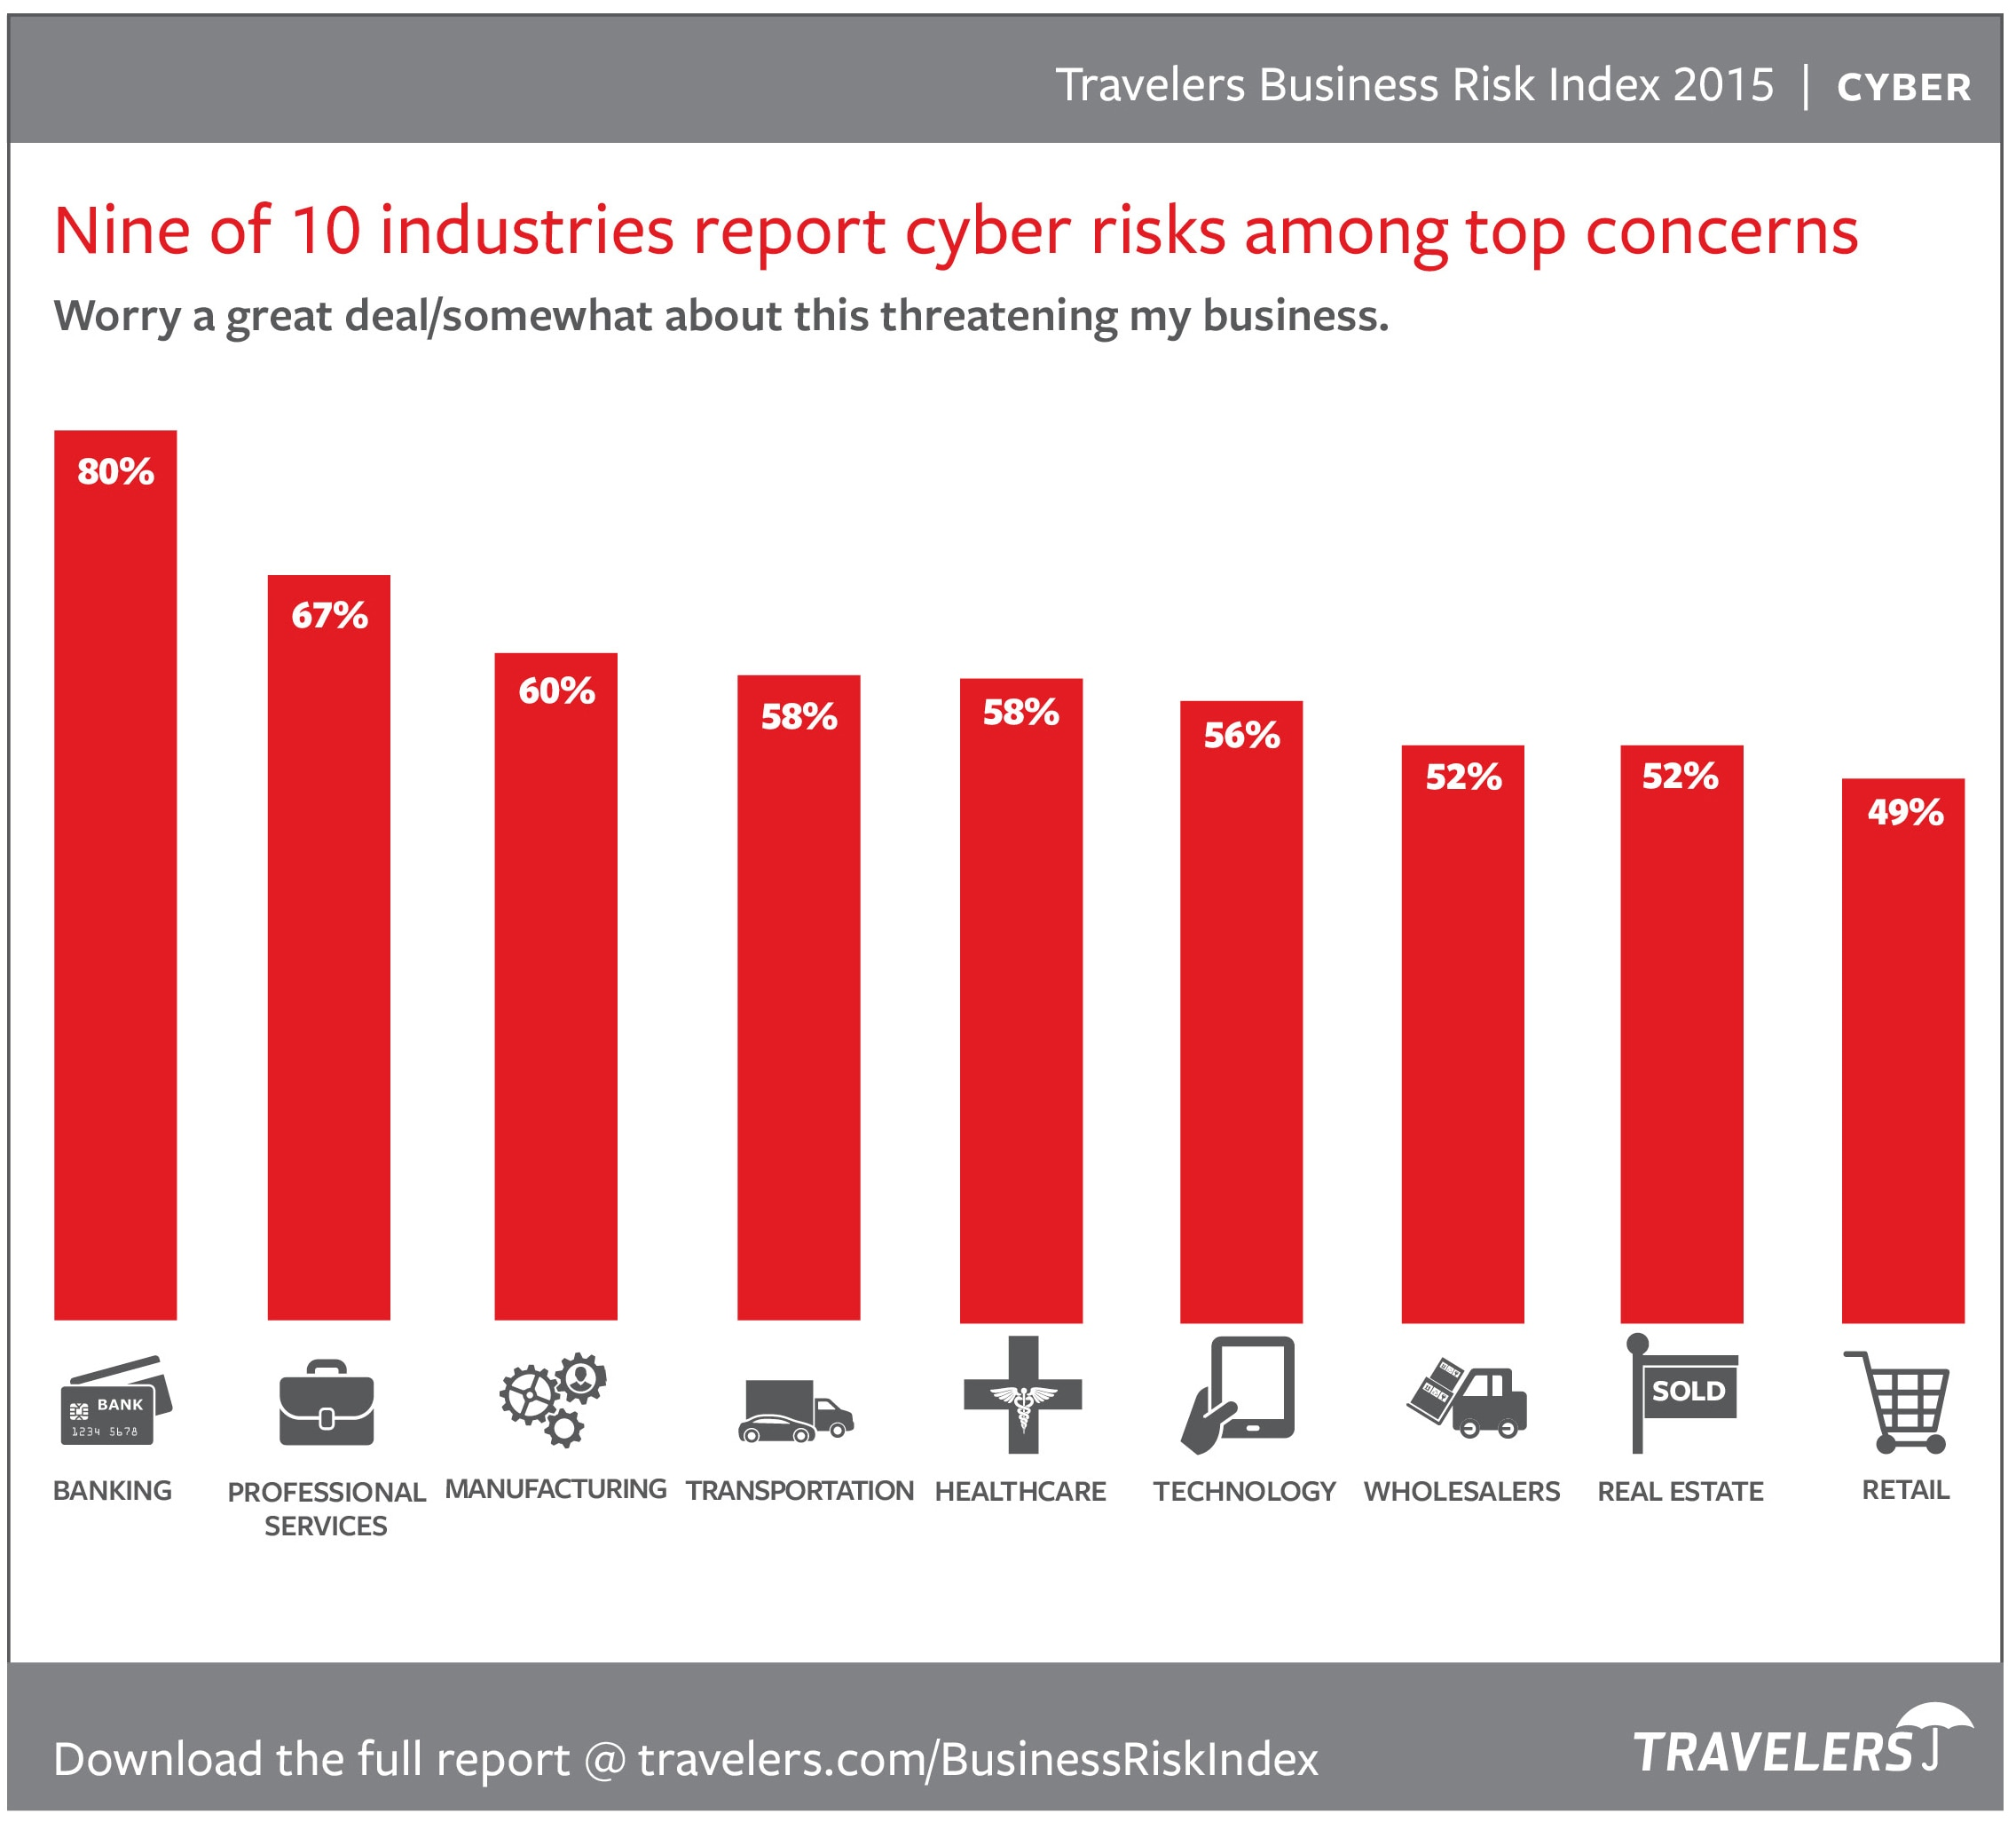 Cyber risks chart from 2015 Business Risk Index